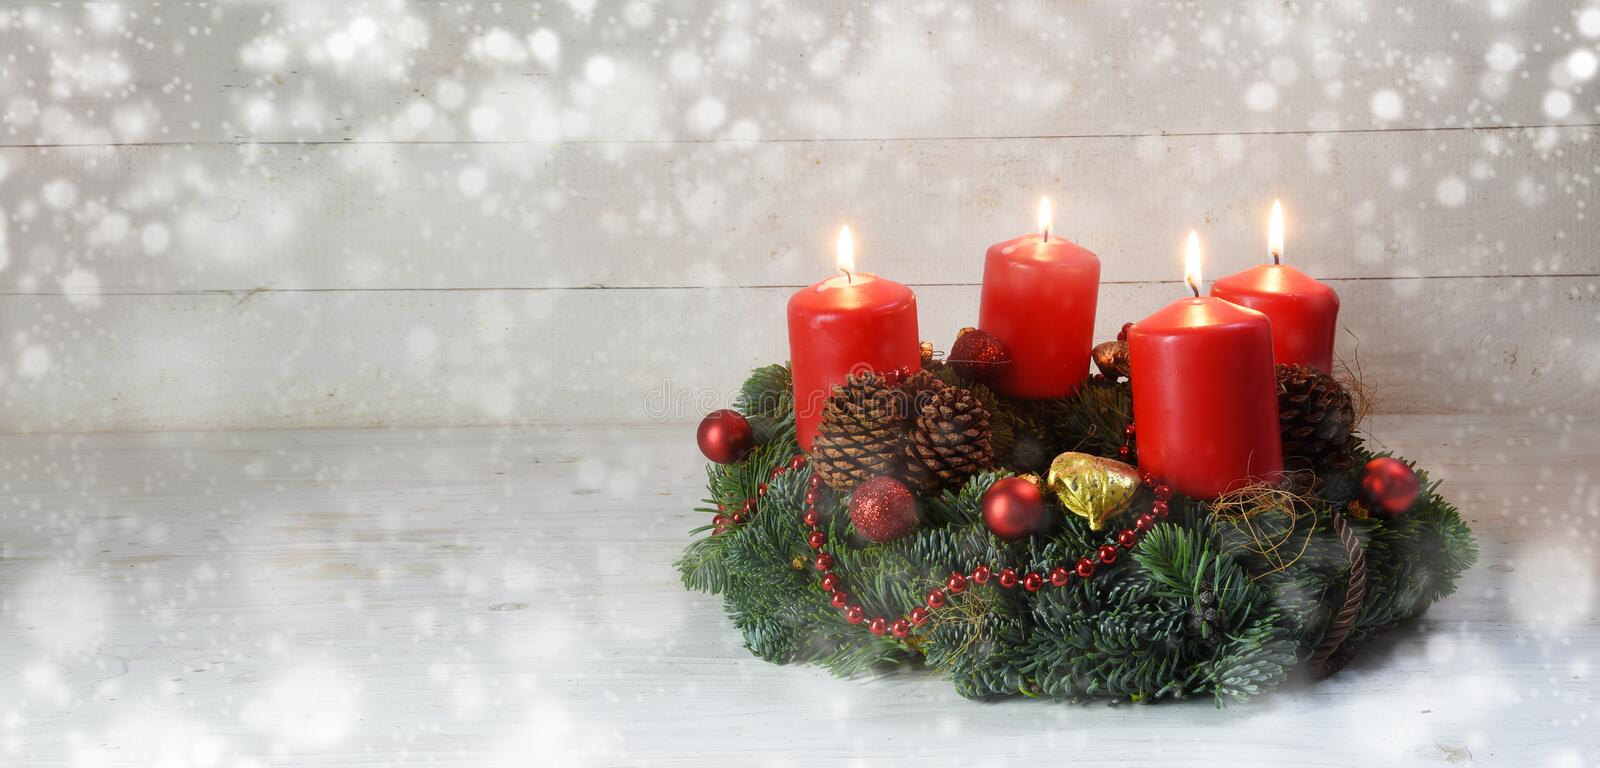 Advent wreath with four red burning candles and christmas decoration on rustic white wood, bokeh lights and blurred stock image